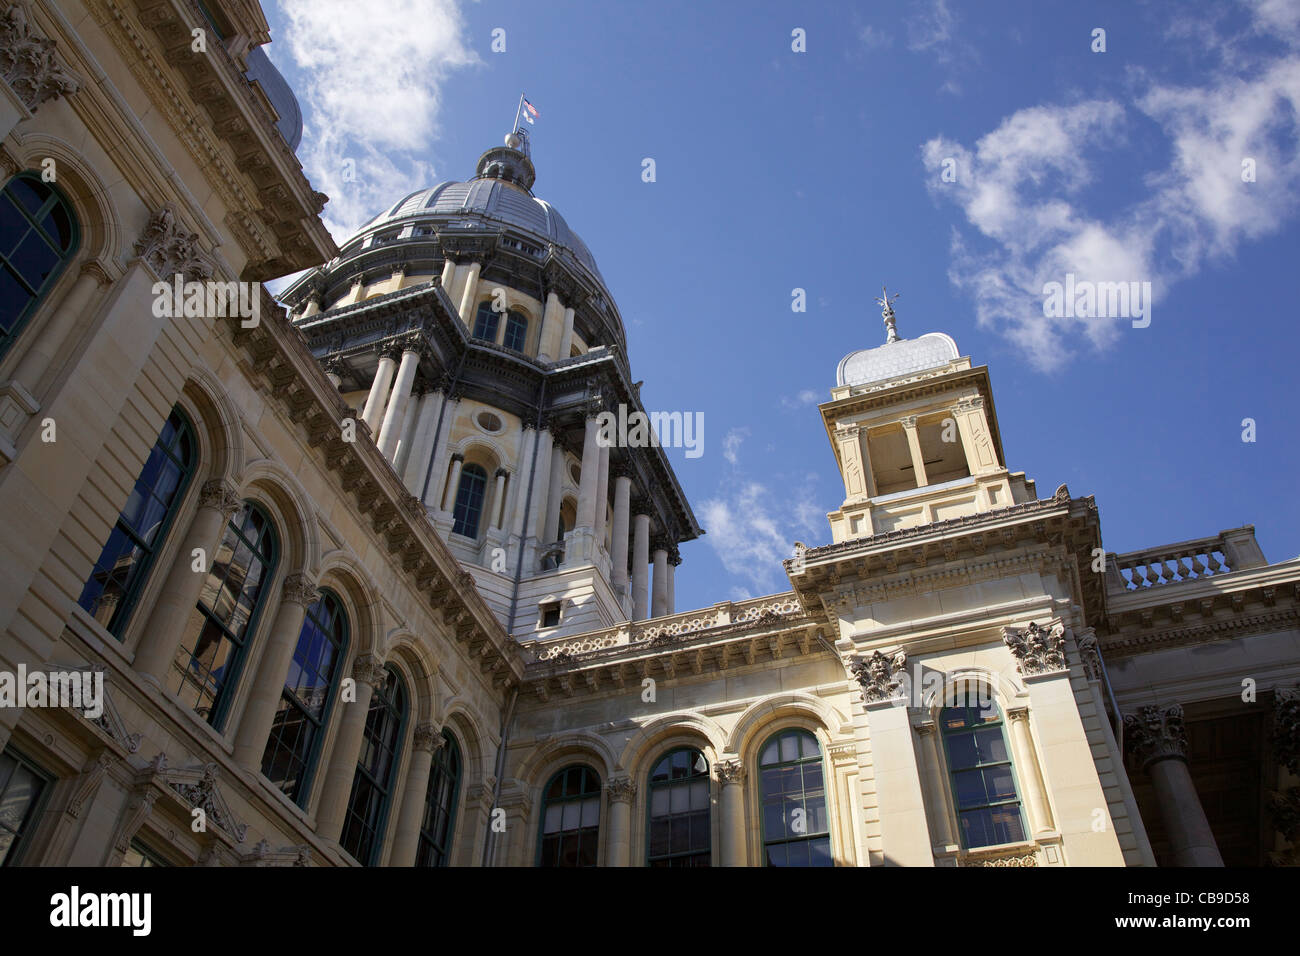 Illinois State Capitol Building. - Stock Image